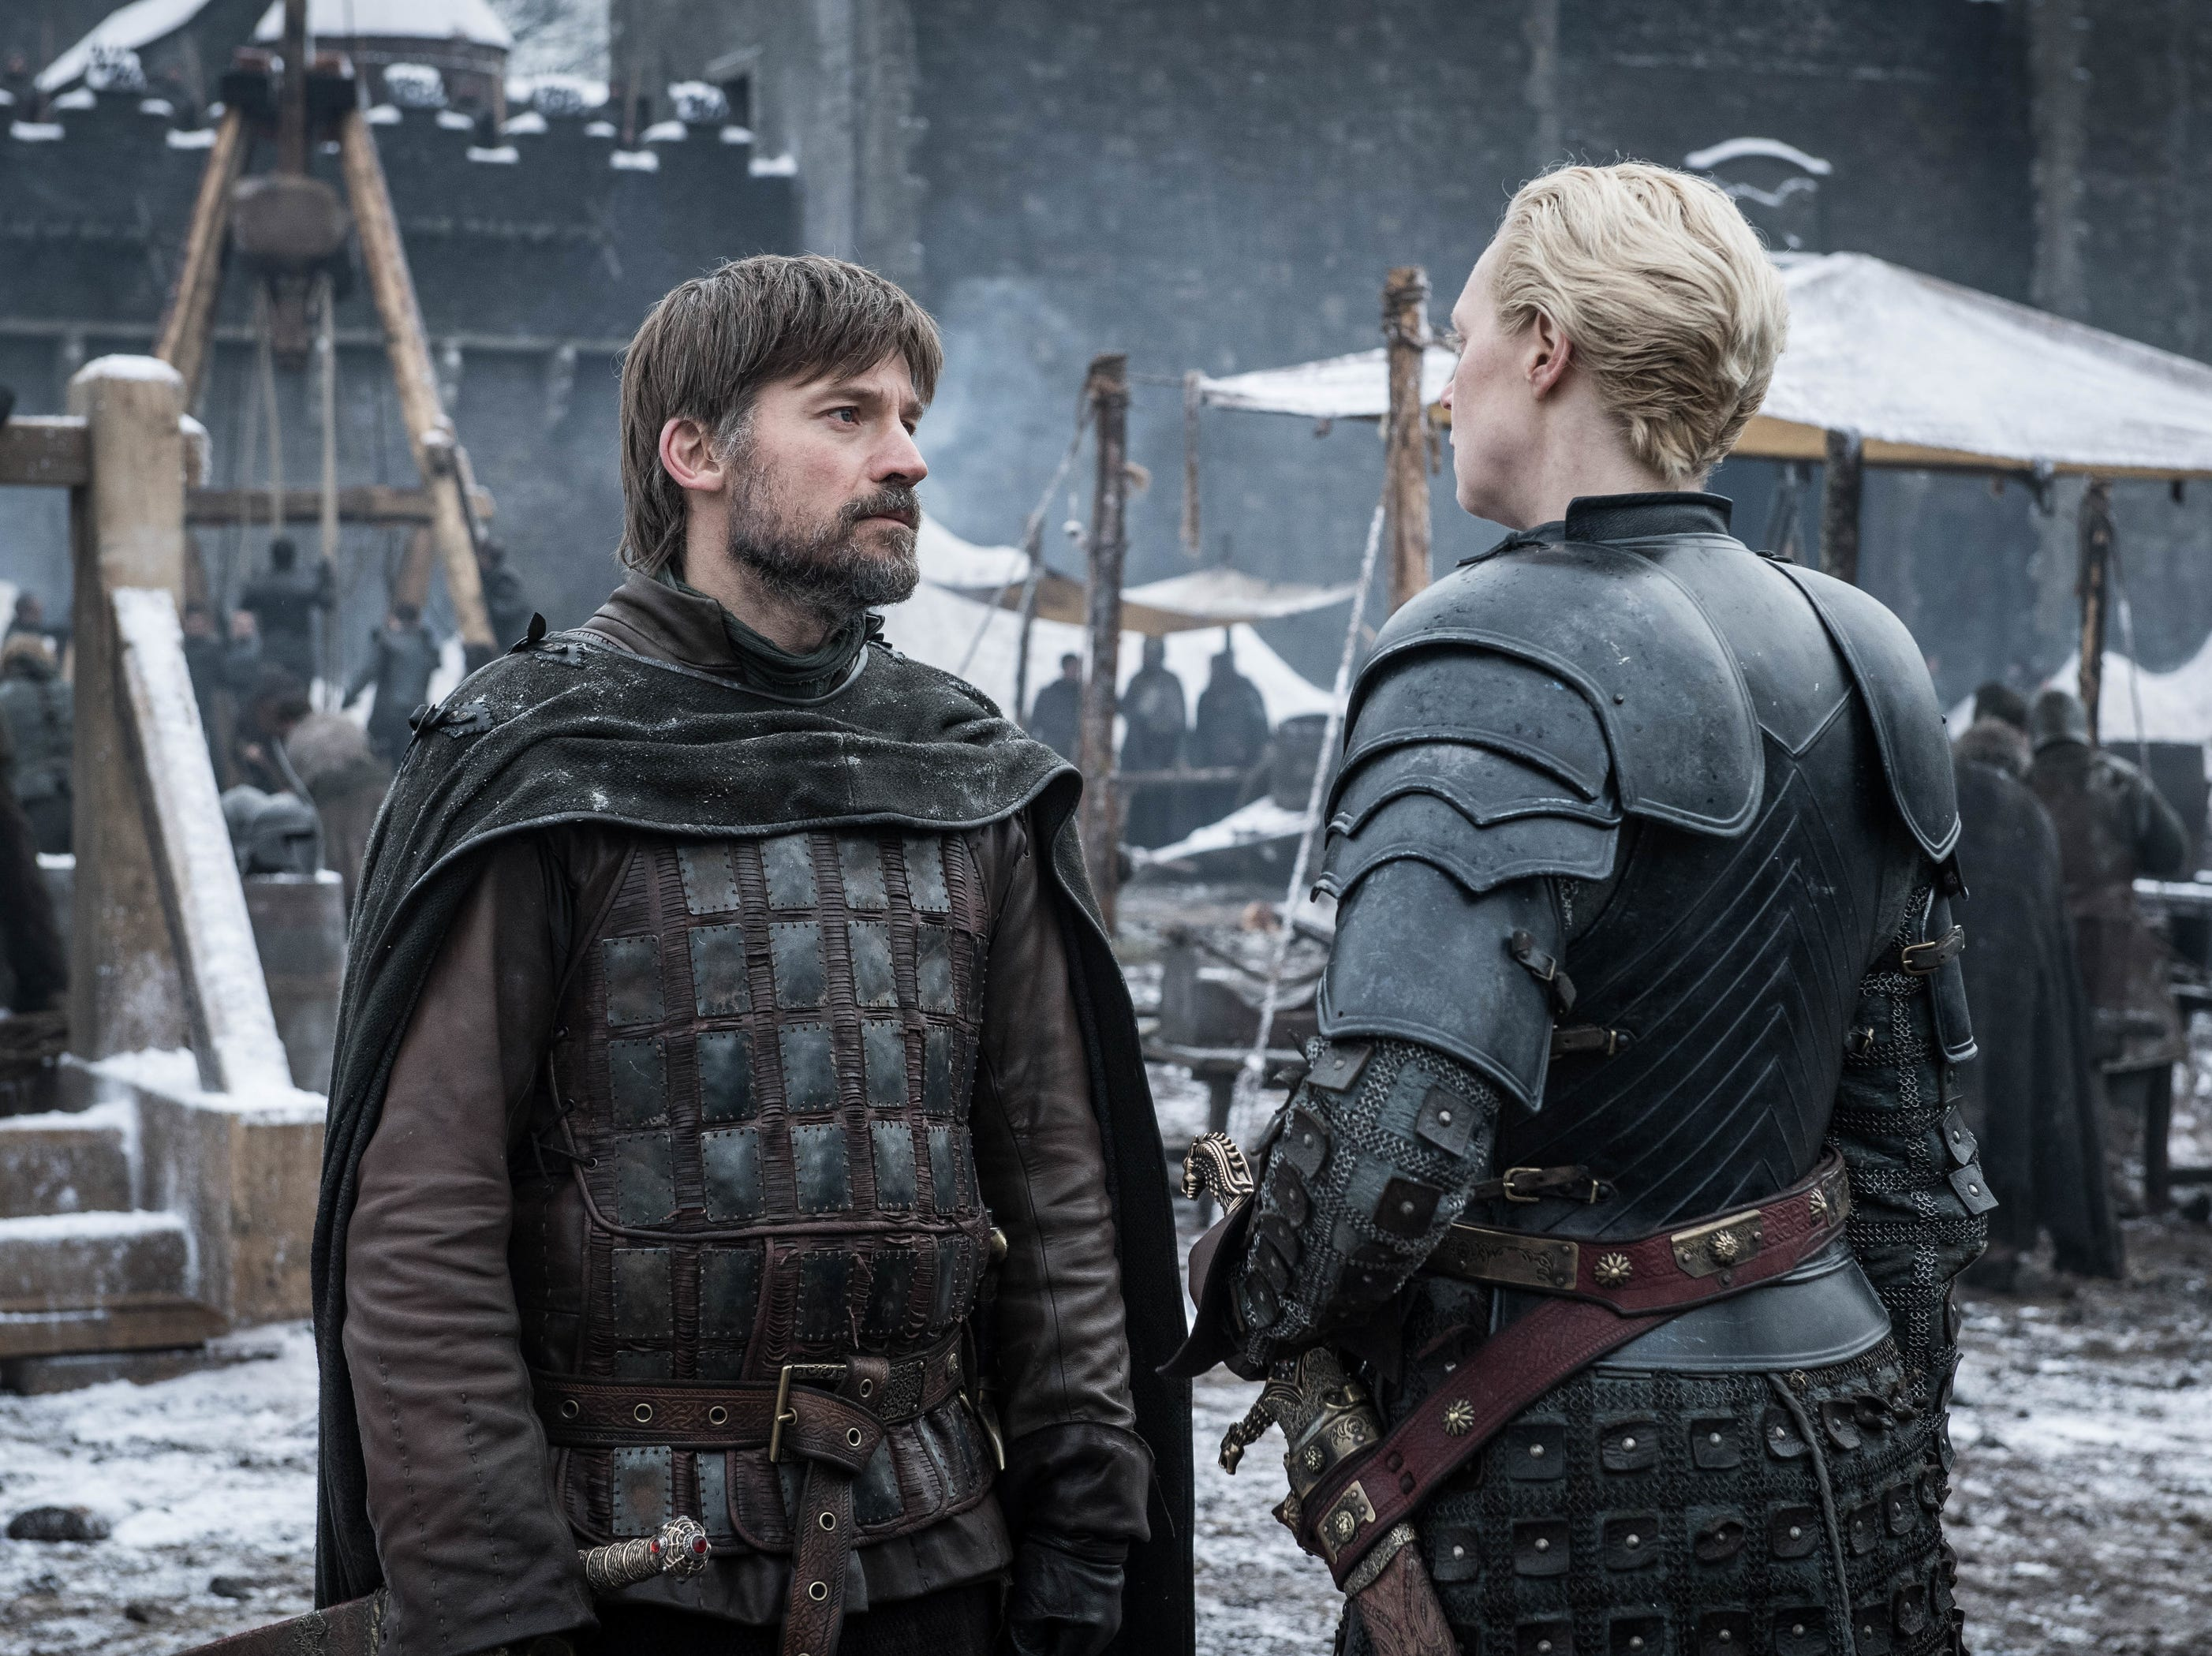 Nikolaj Coster-Waldau as Jaime Lannister, left, and Gwendoline Christie as Brienne of Tarth on 'Game of Thrones.'